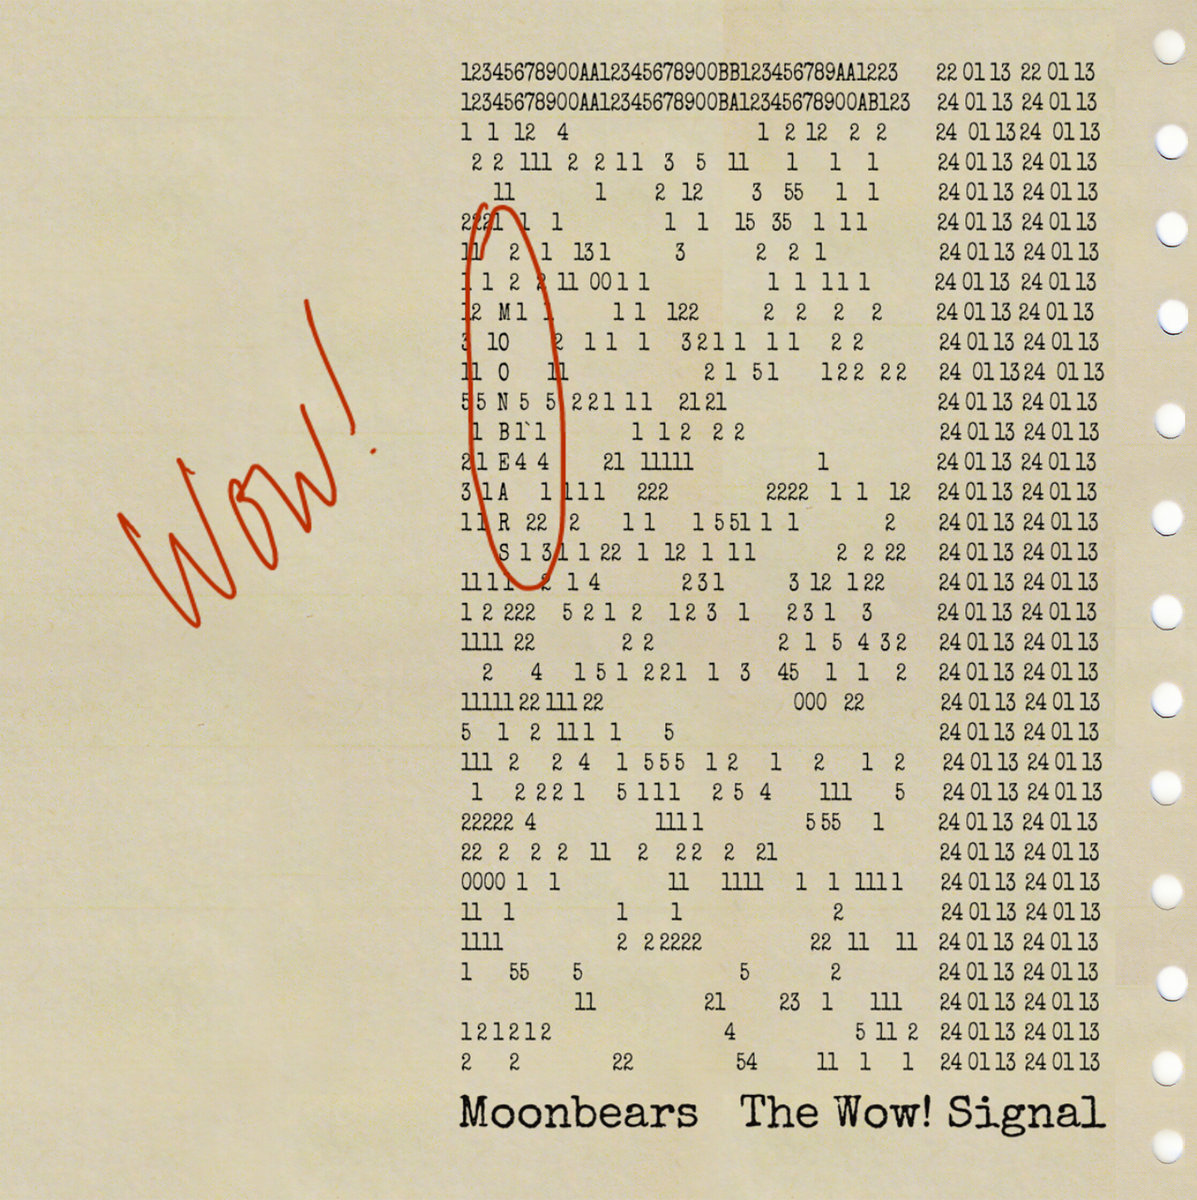 The Wow! Signal | Moonbears